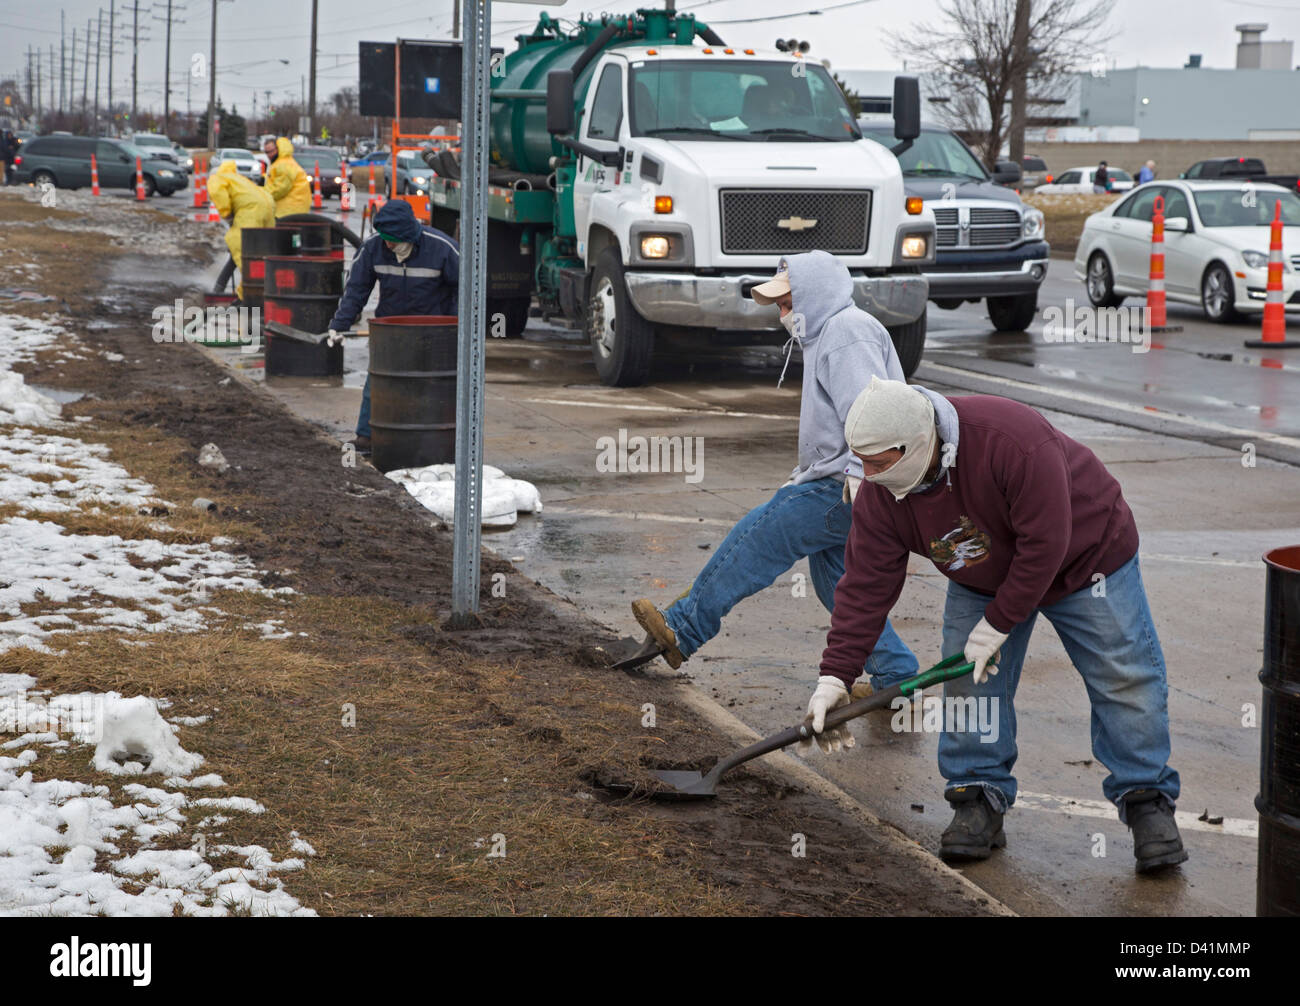 Warren, Michigan - Workers clean up a hazardous material spill on the shoulder of a major street. - Stock Image